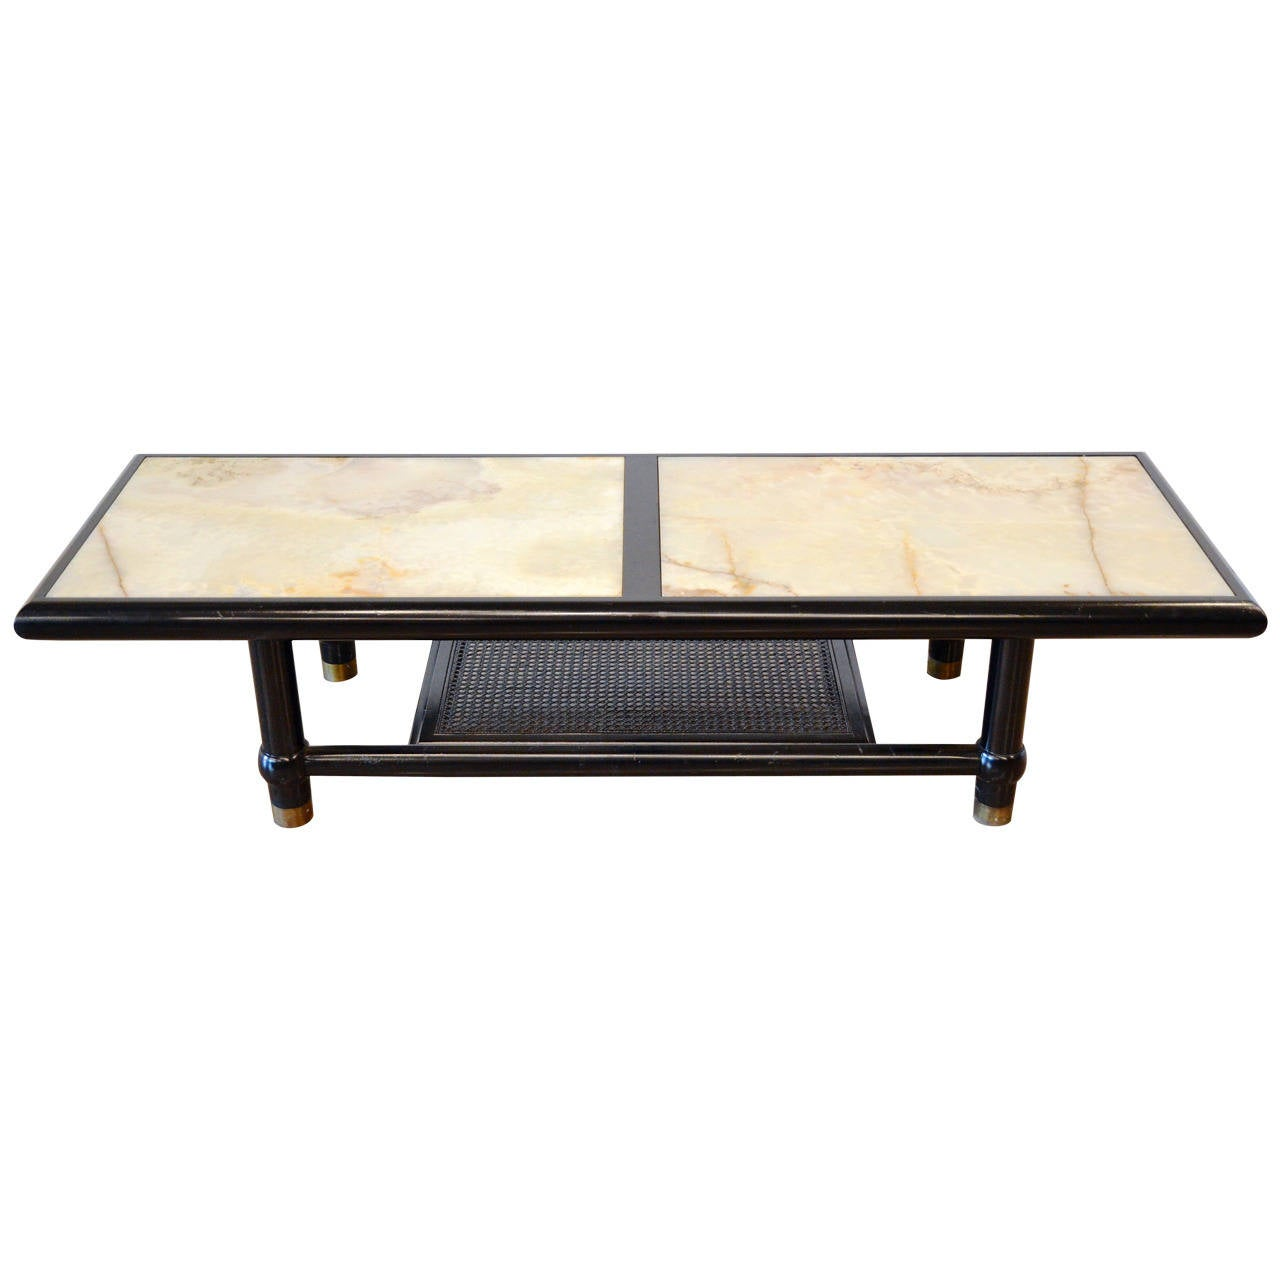 Onyx Coffee Table At 1stdibs Italian Coffee Table With Brass Base And Onyx Top By Cesare Lacca